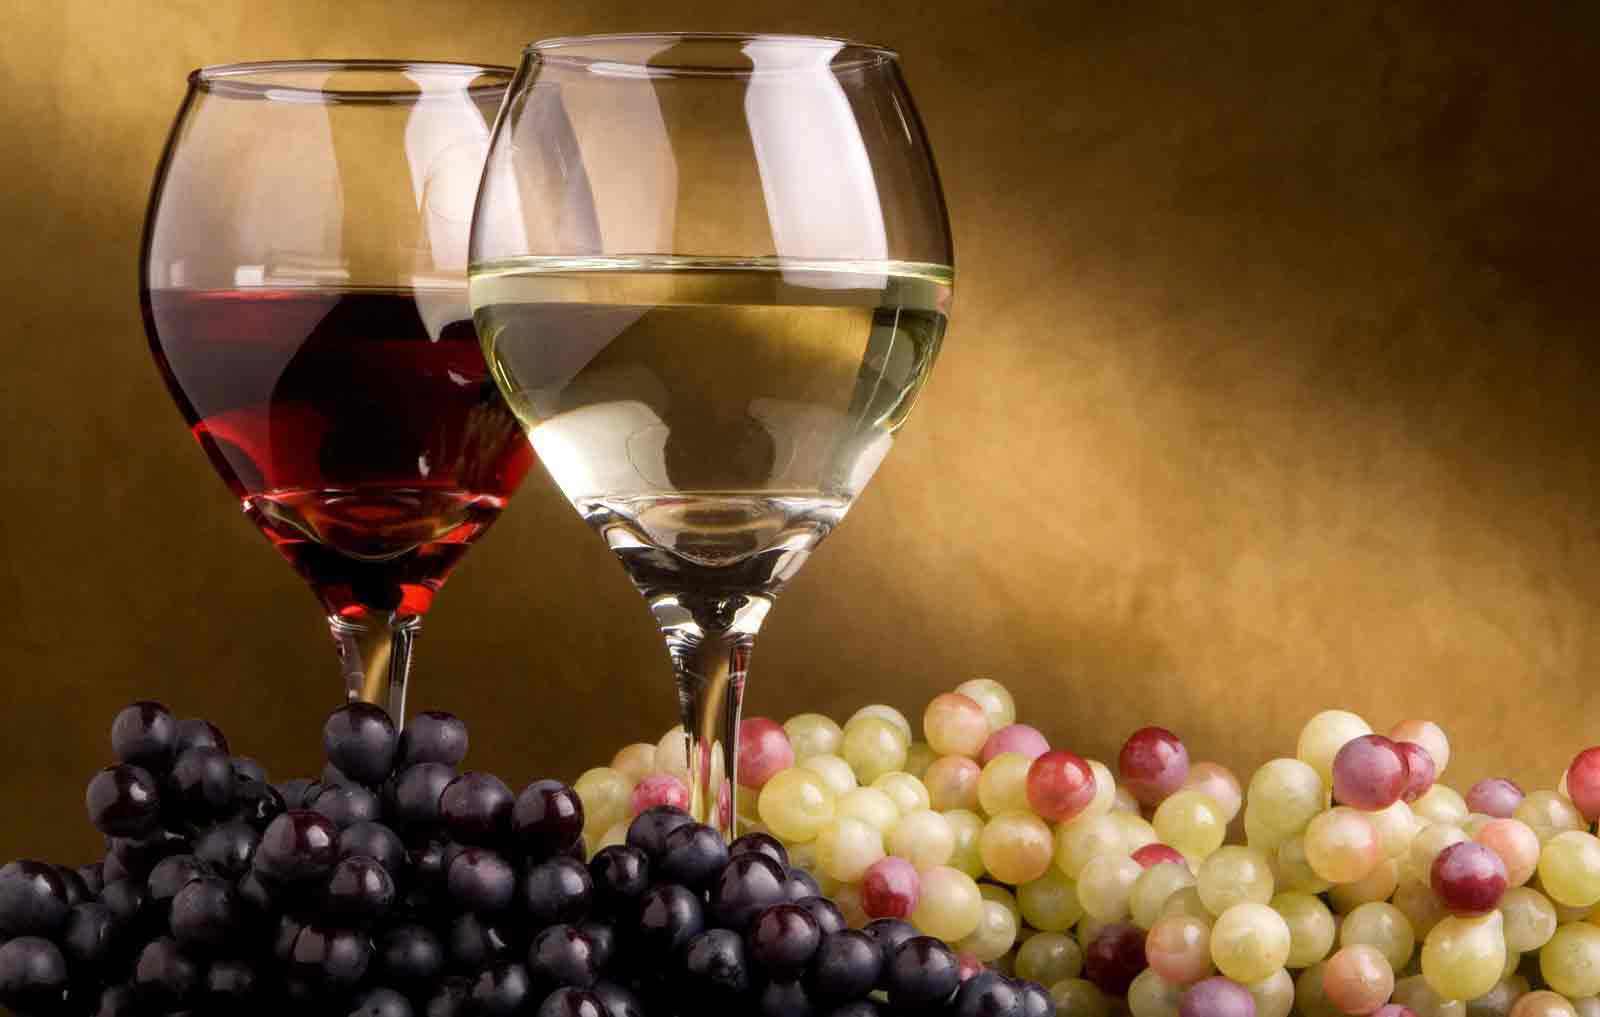 L'Italia del vino guarda ai consumi interni, ma l'export resta il business